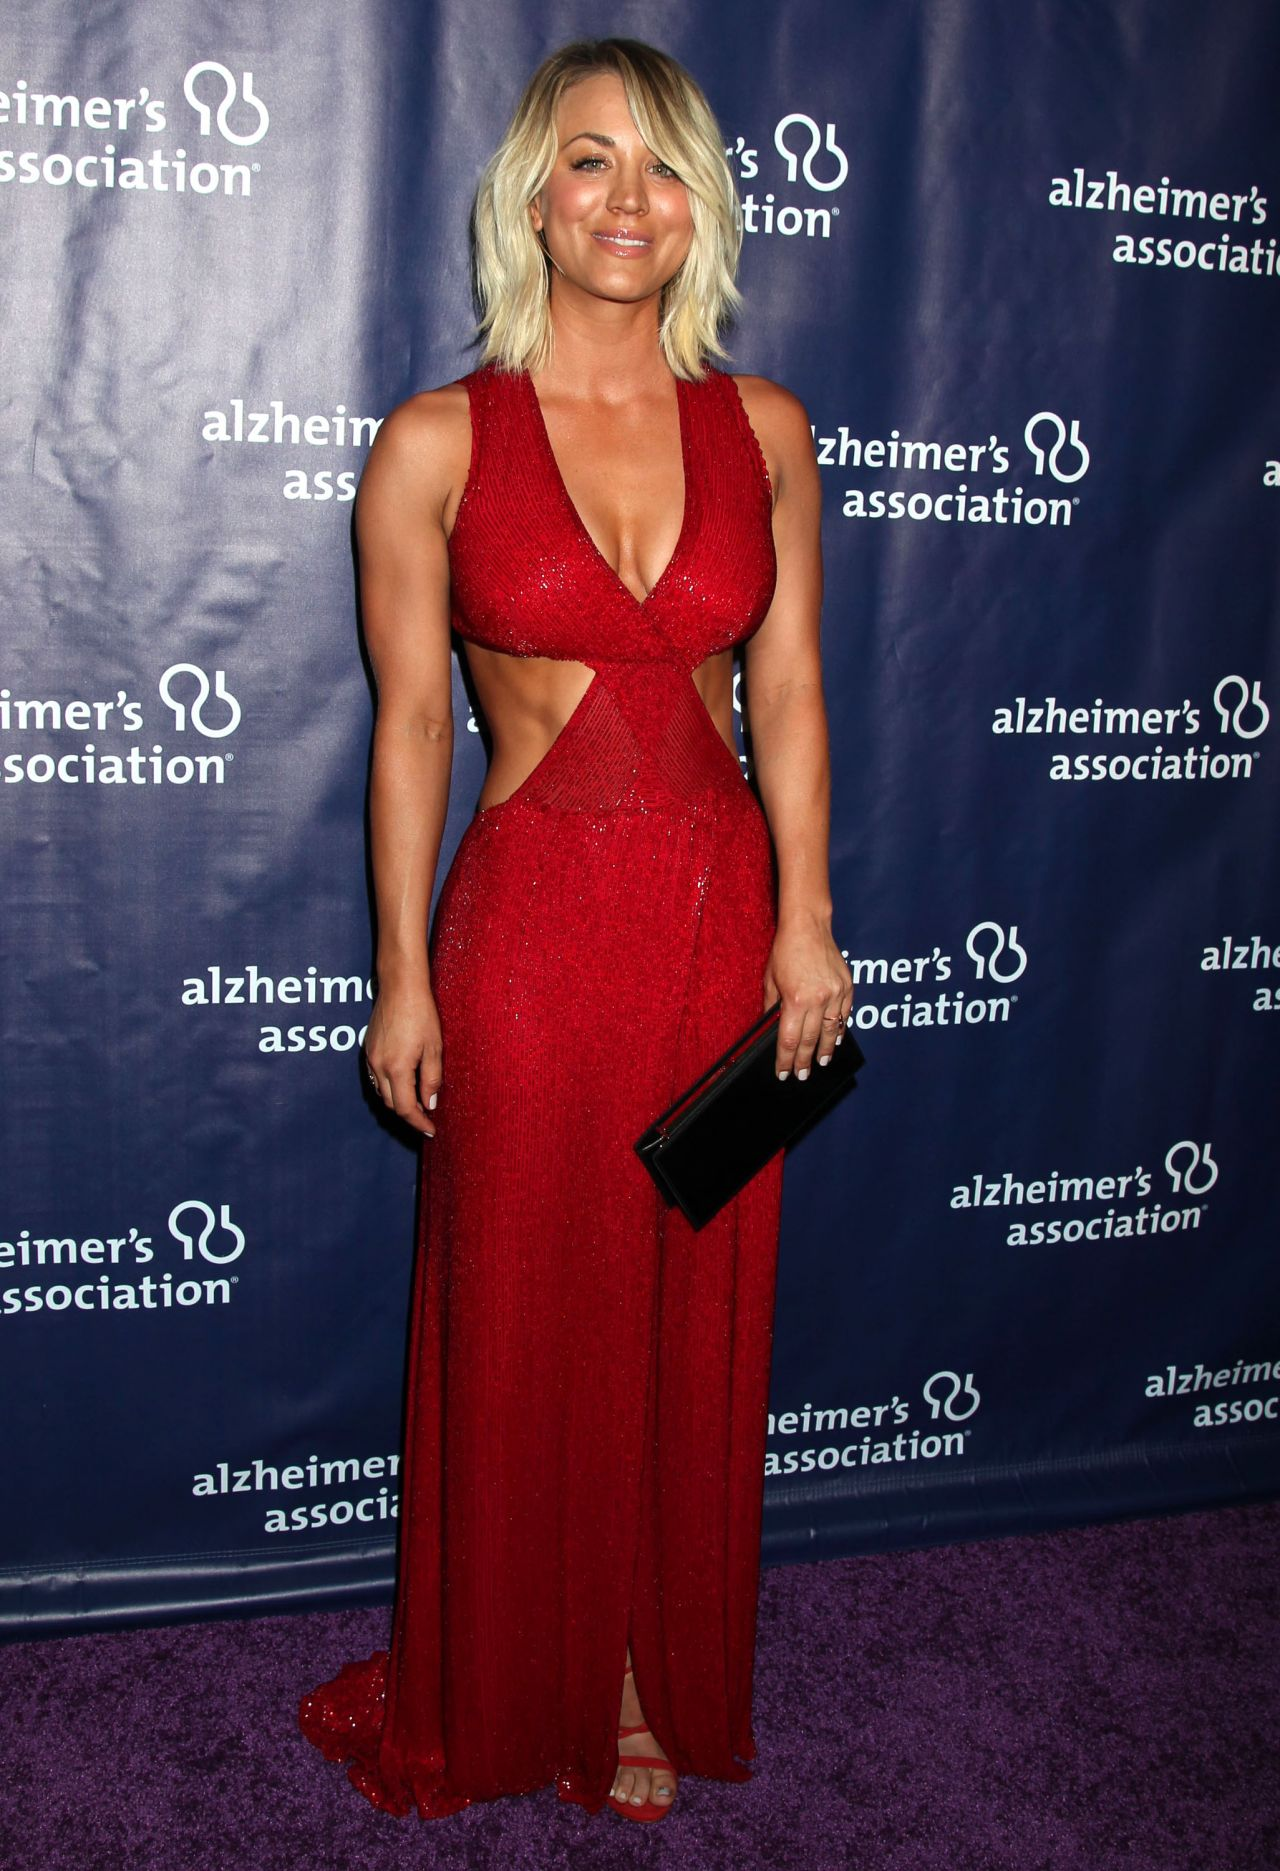 kaley-cuoco-2016-alzheimer-s-association-a-night-at-sardi-s-in-beverly-hills-14